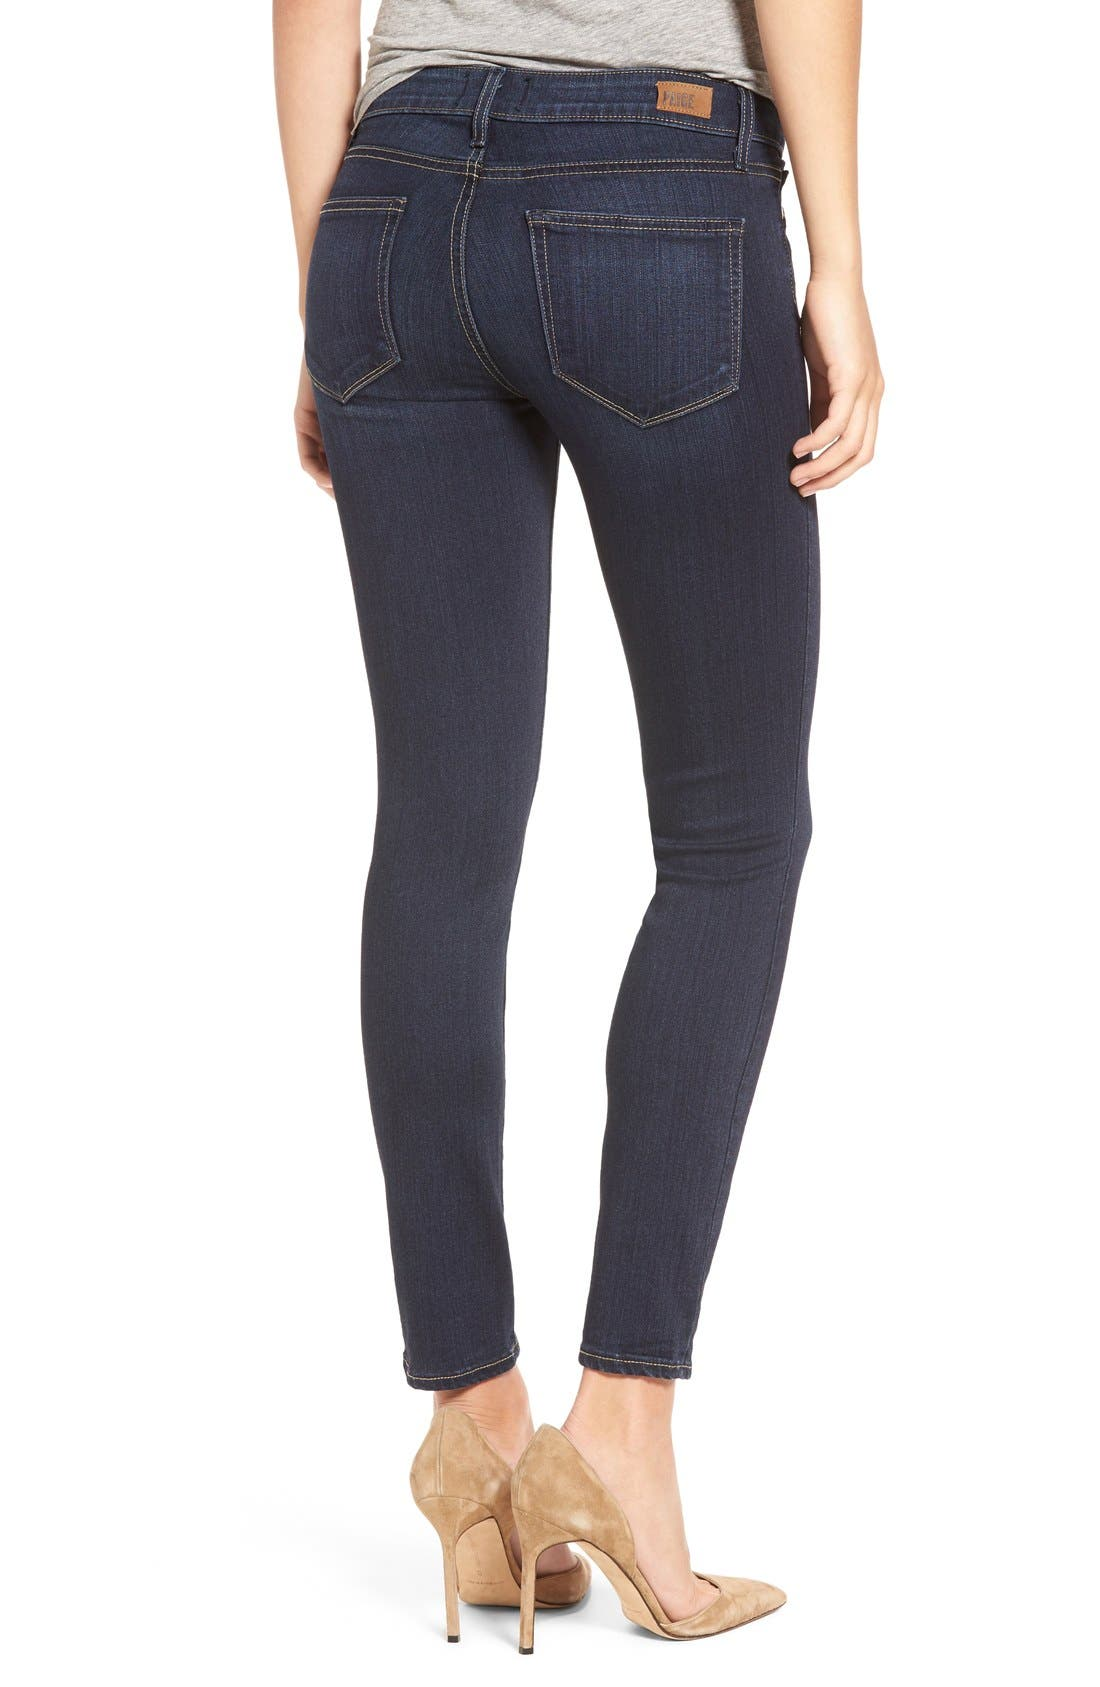 Alternate Image 3  - PAIGE Transcend - Verdugo Ankle Ultra Skinny Jeans (Hartmann) (Nordstrom Exclusive)